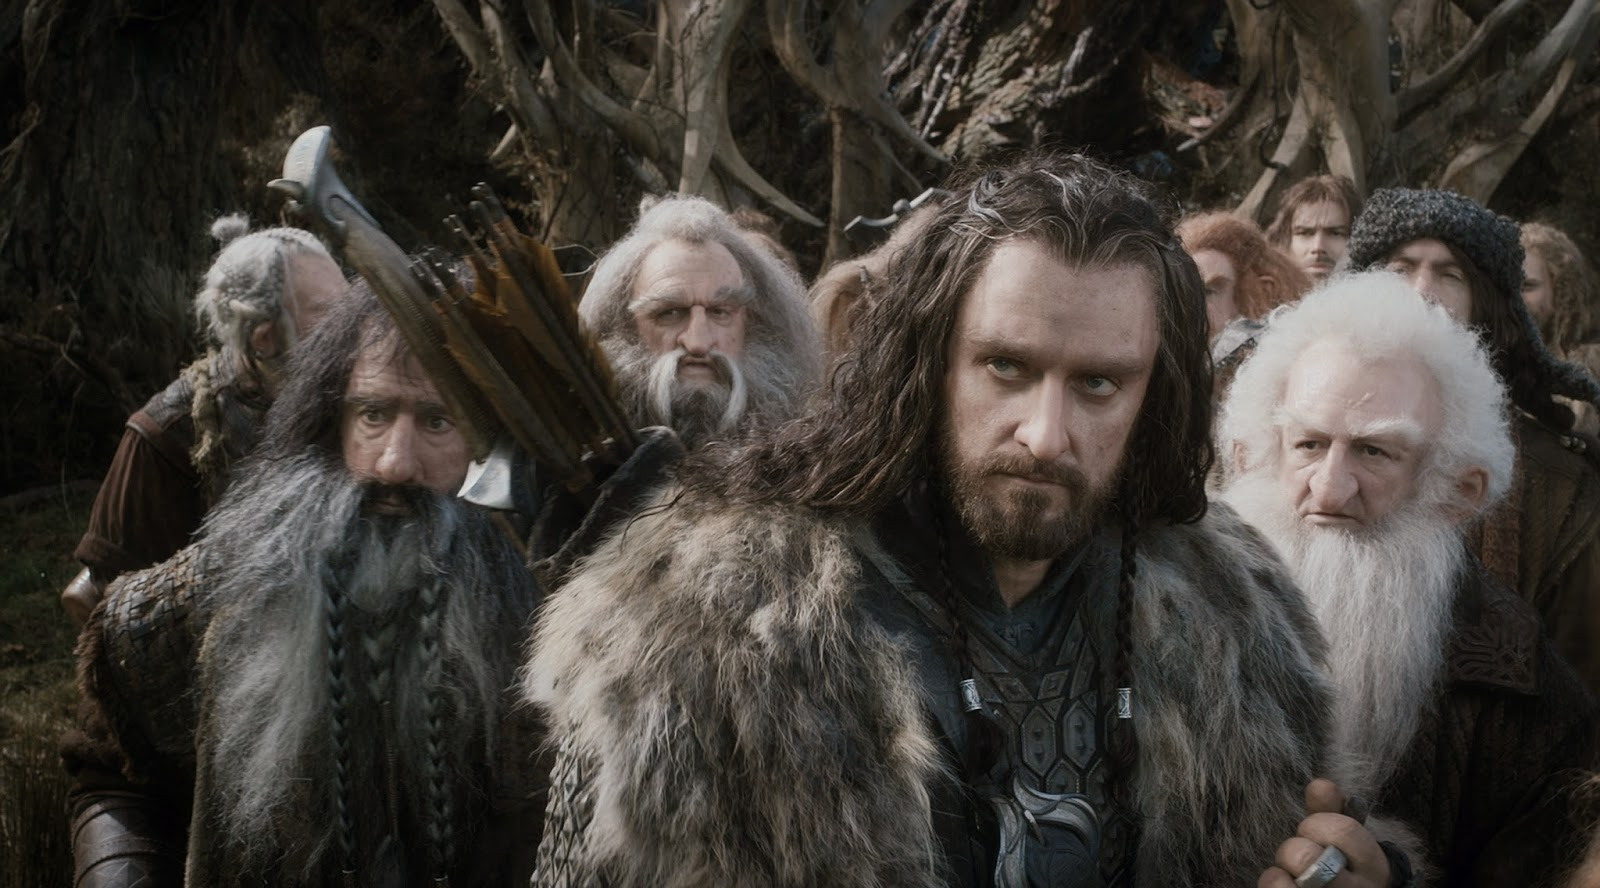 the hobbit desolation of smaug full movie in hindi download